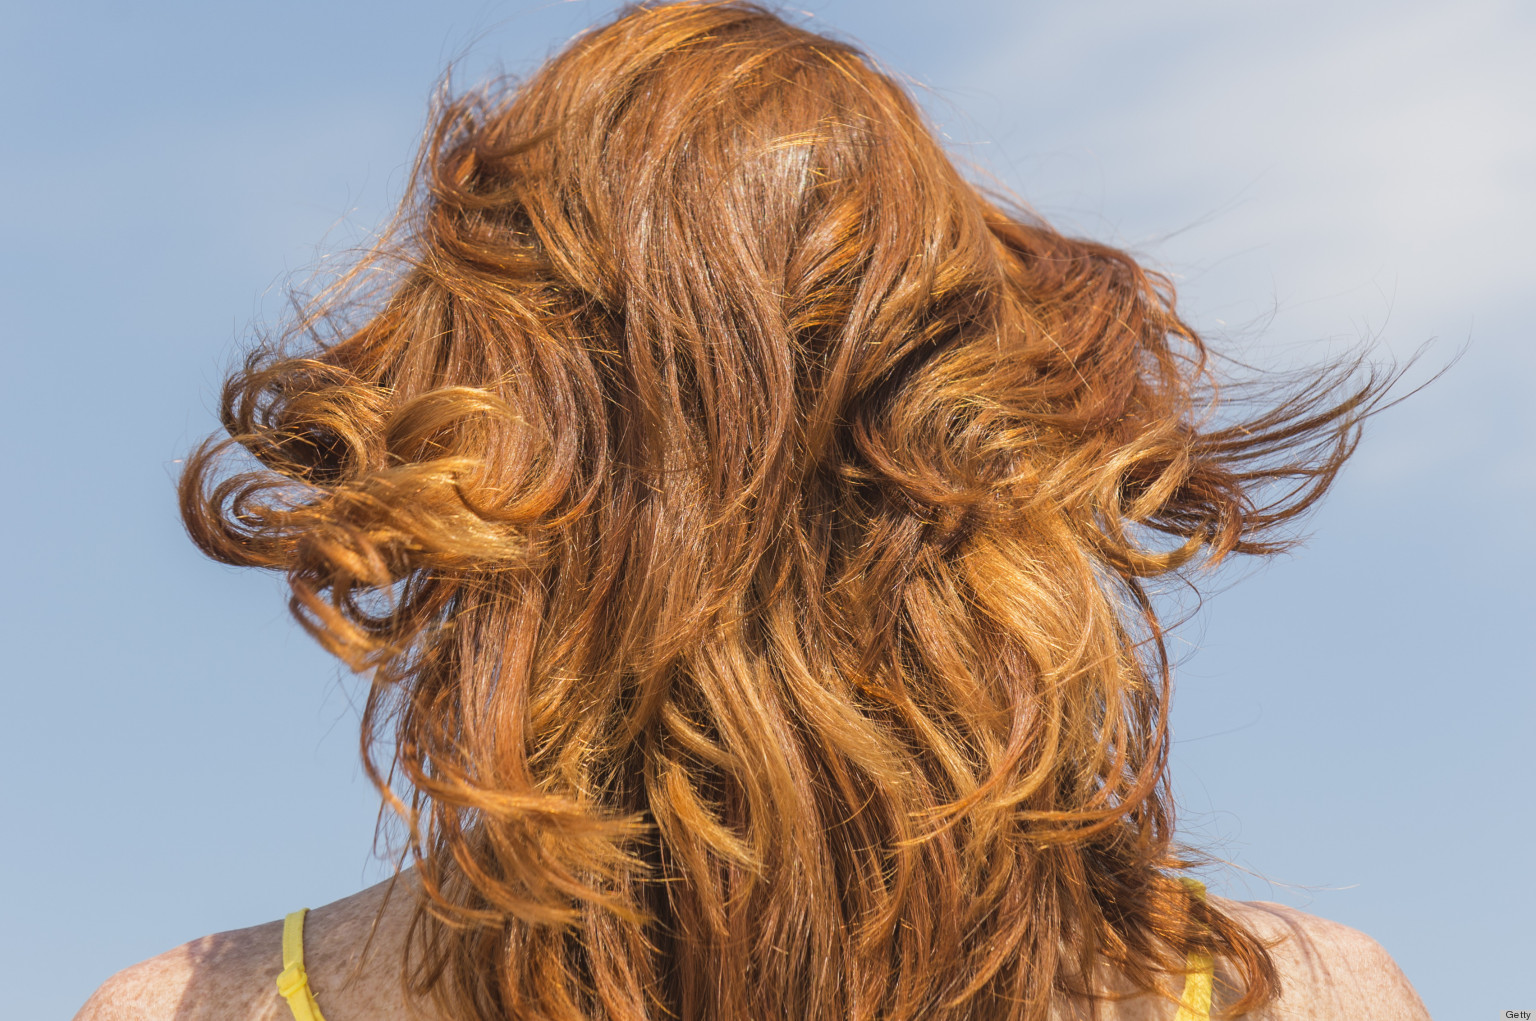 Hair Color Tips To Protect Your Strands All Summer Long | HuffPost